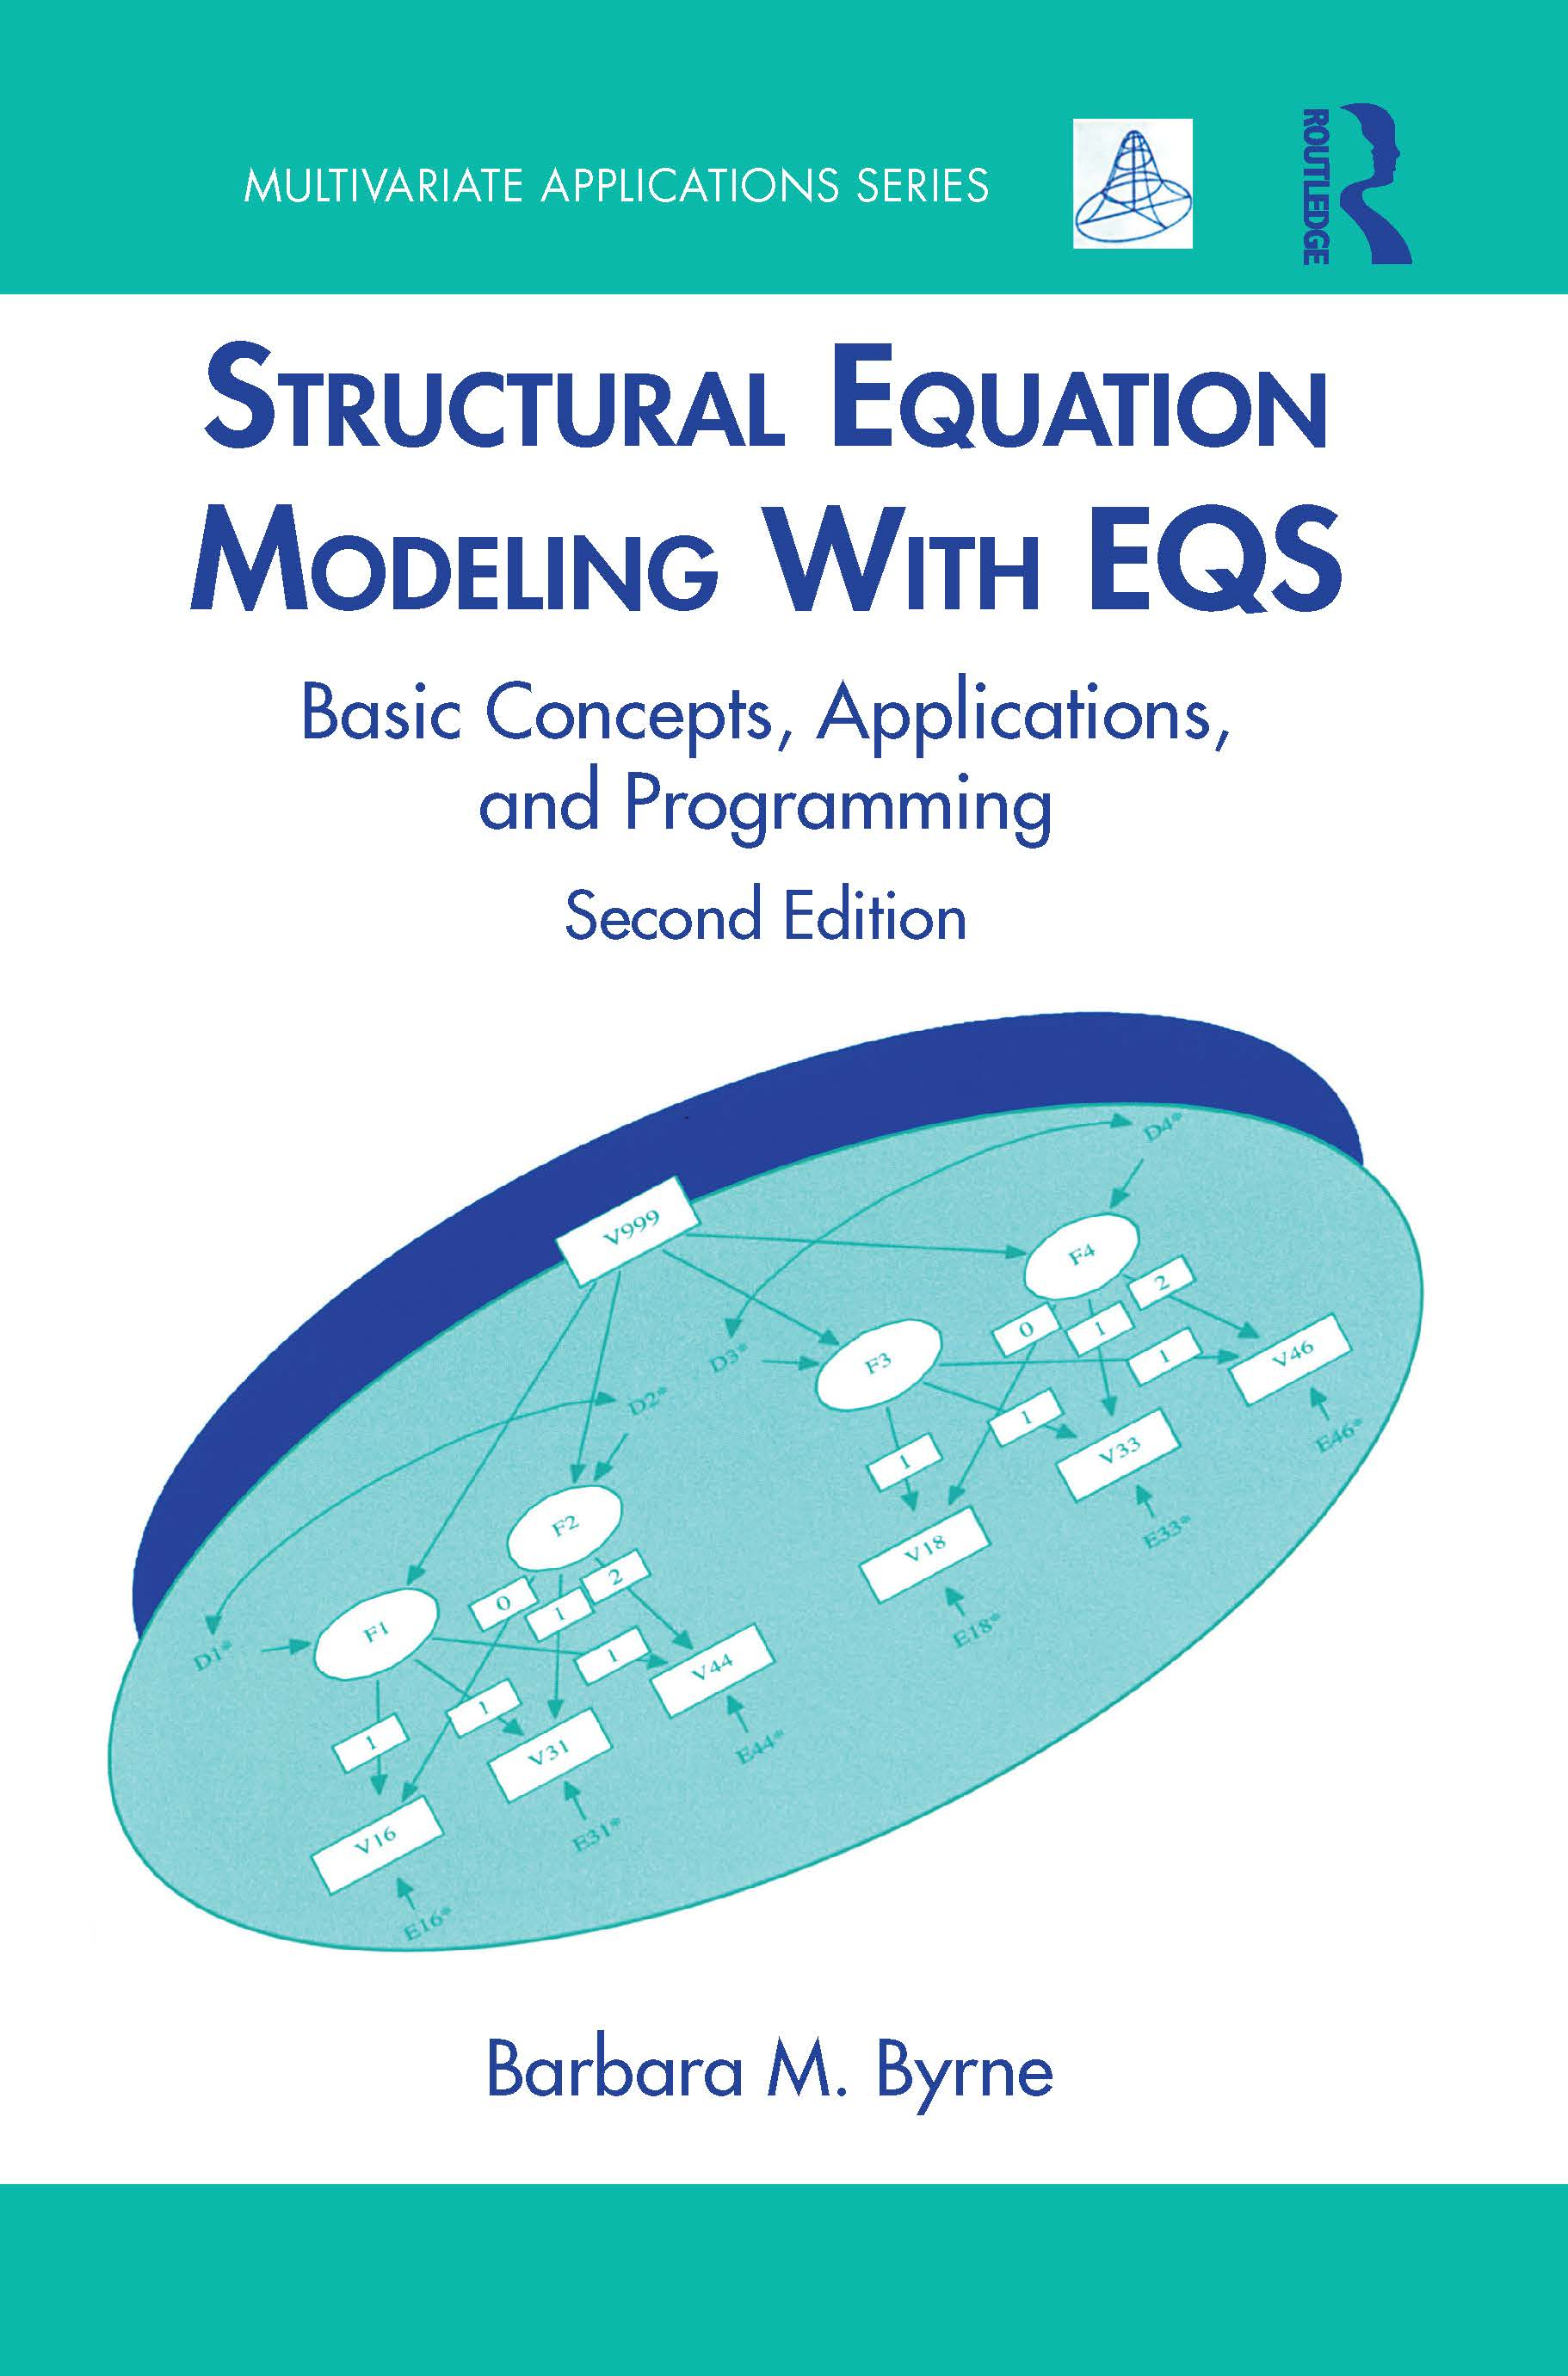 Structural Equation Modeling With EQS: Basic Concepts, Applications, and Programming, Second Edition, 2nd Edition (Paperback) book cover